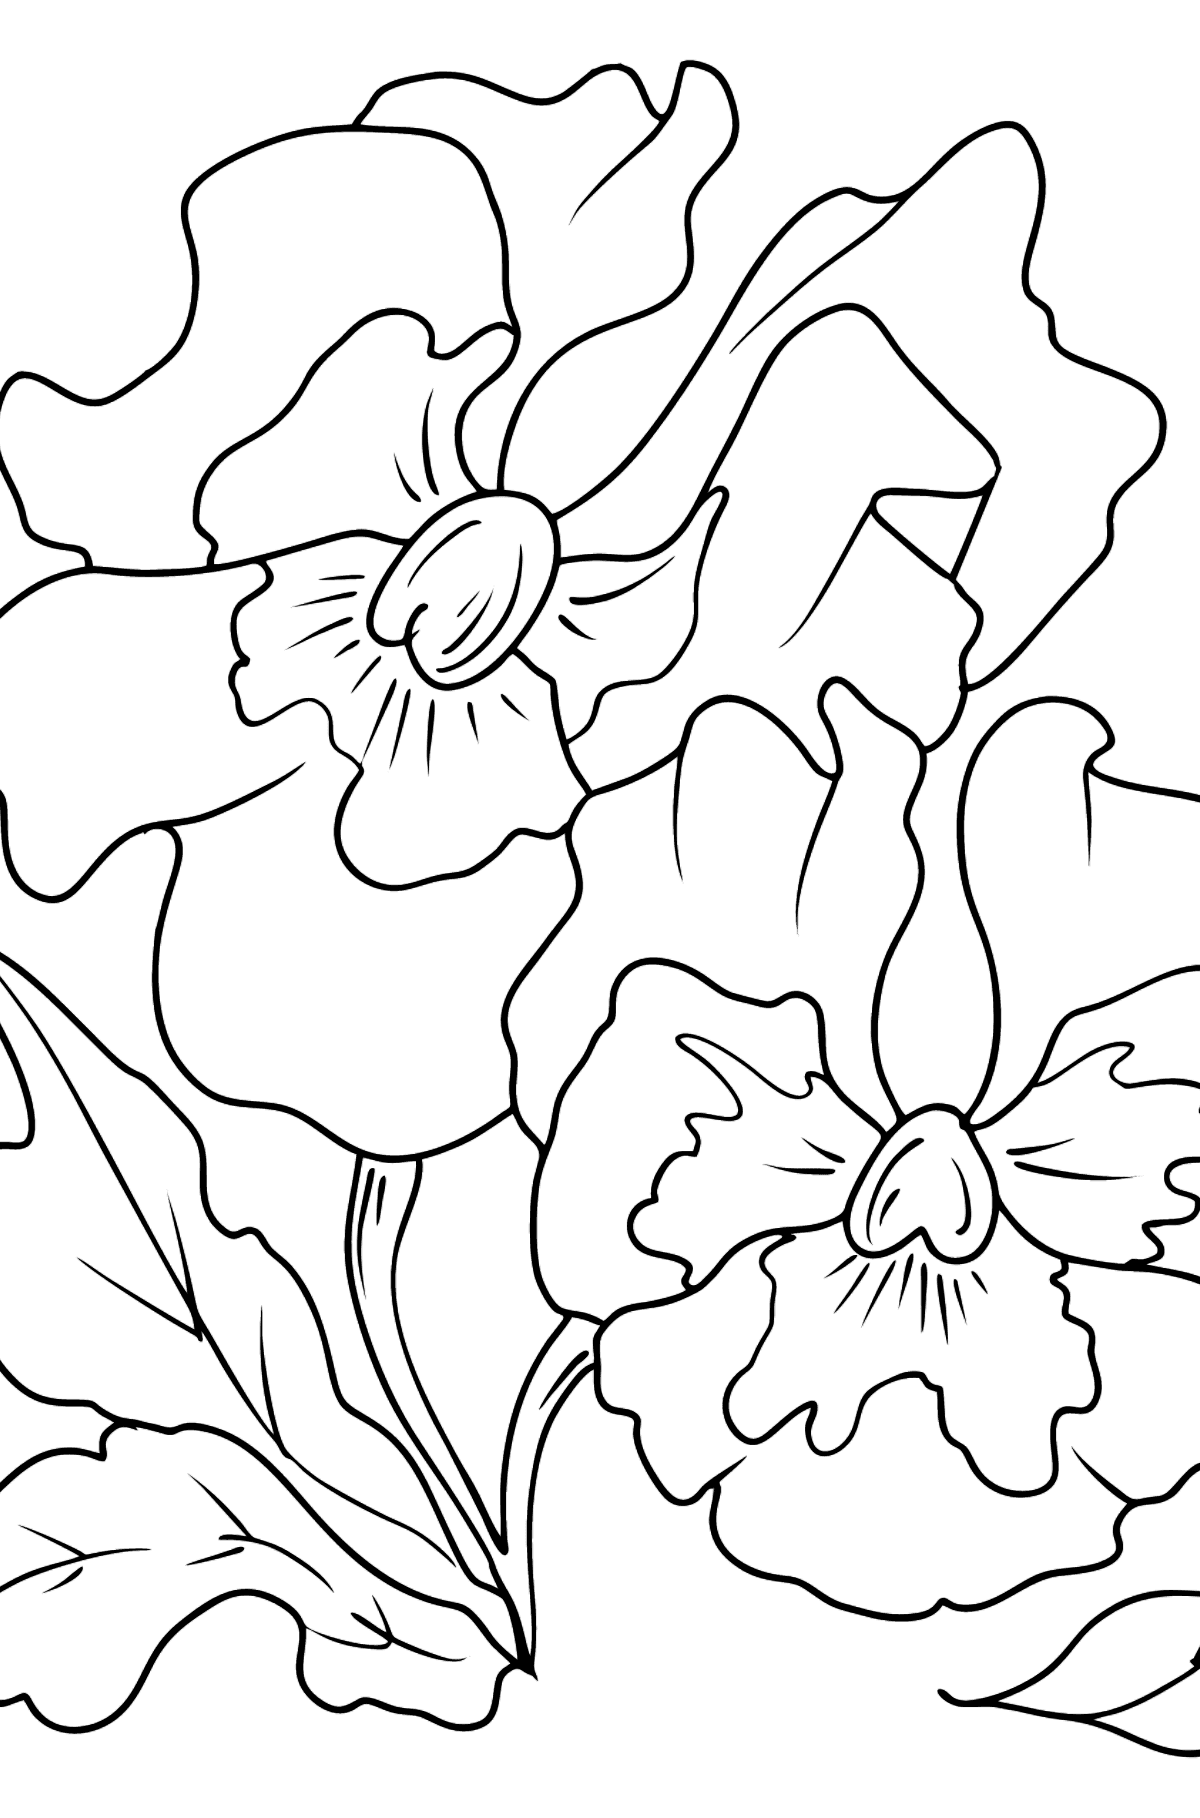 Flower Coloring Page - Pansies - Coloring Pages for Kids